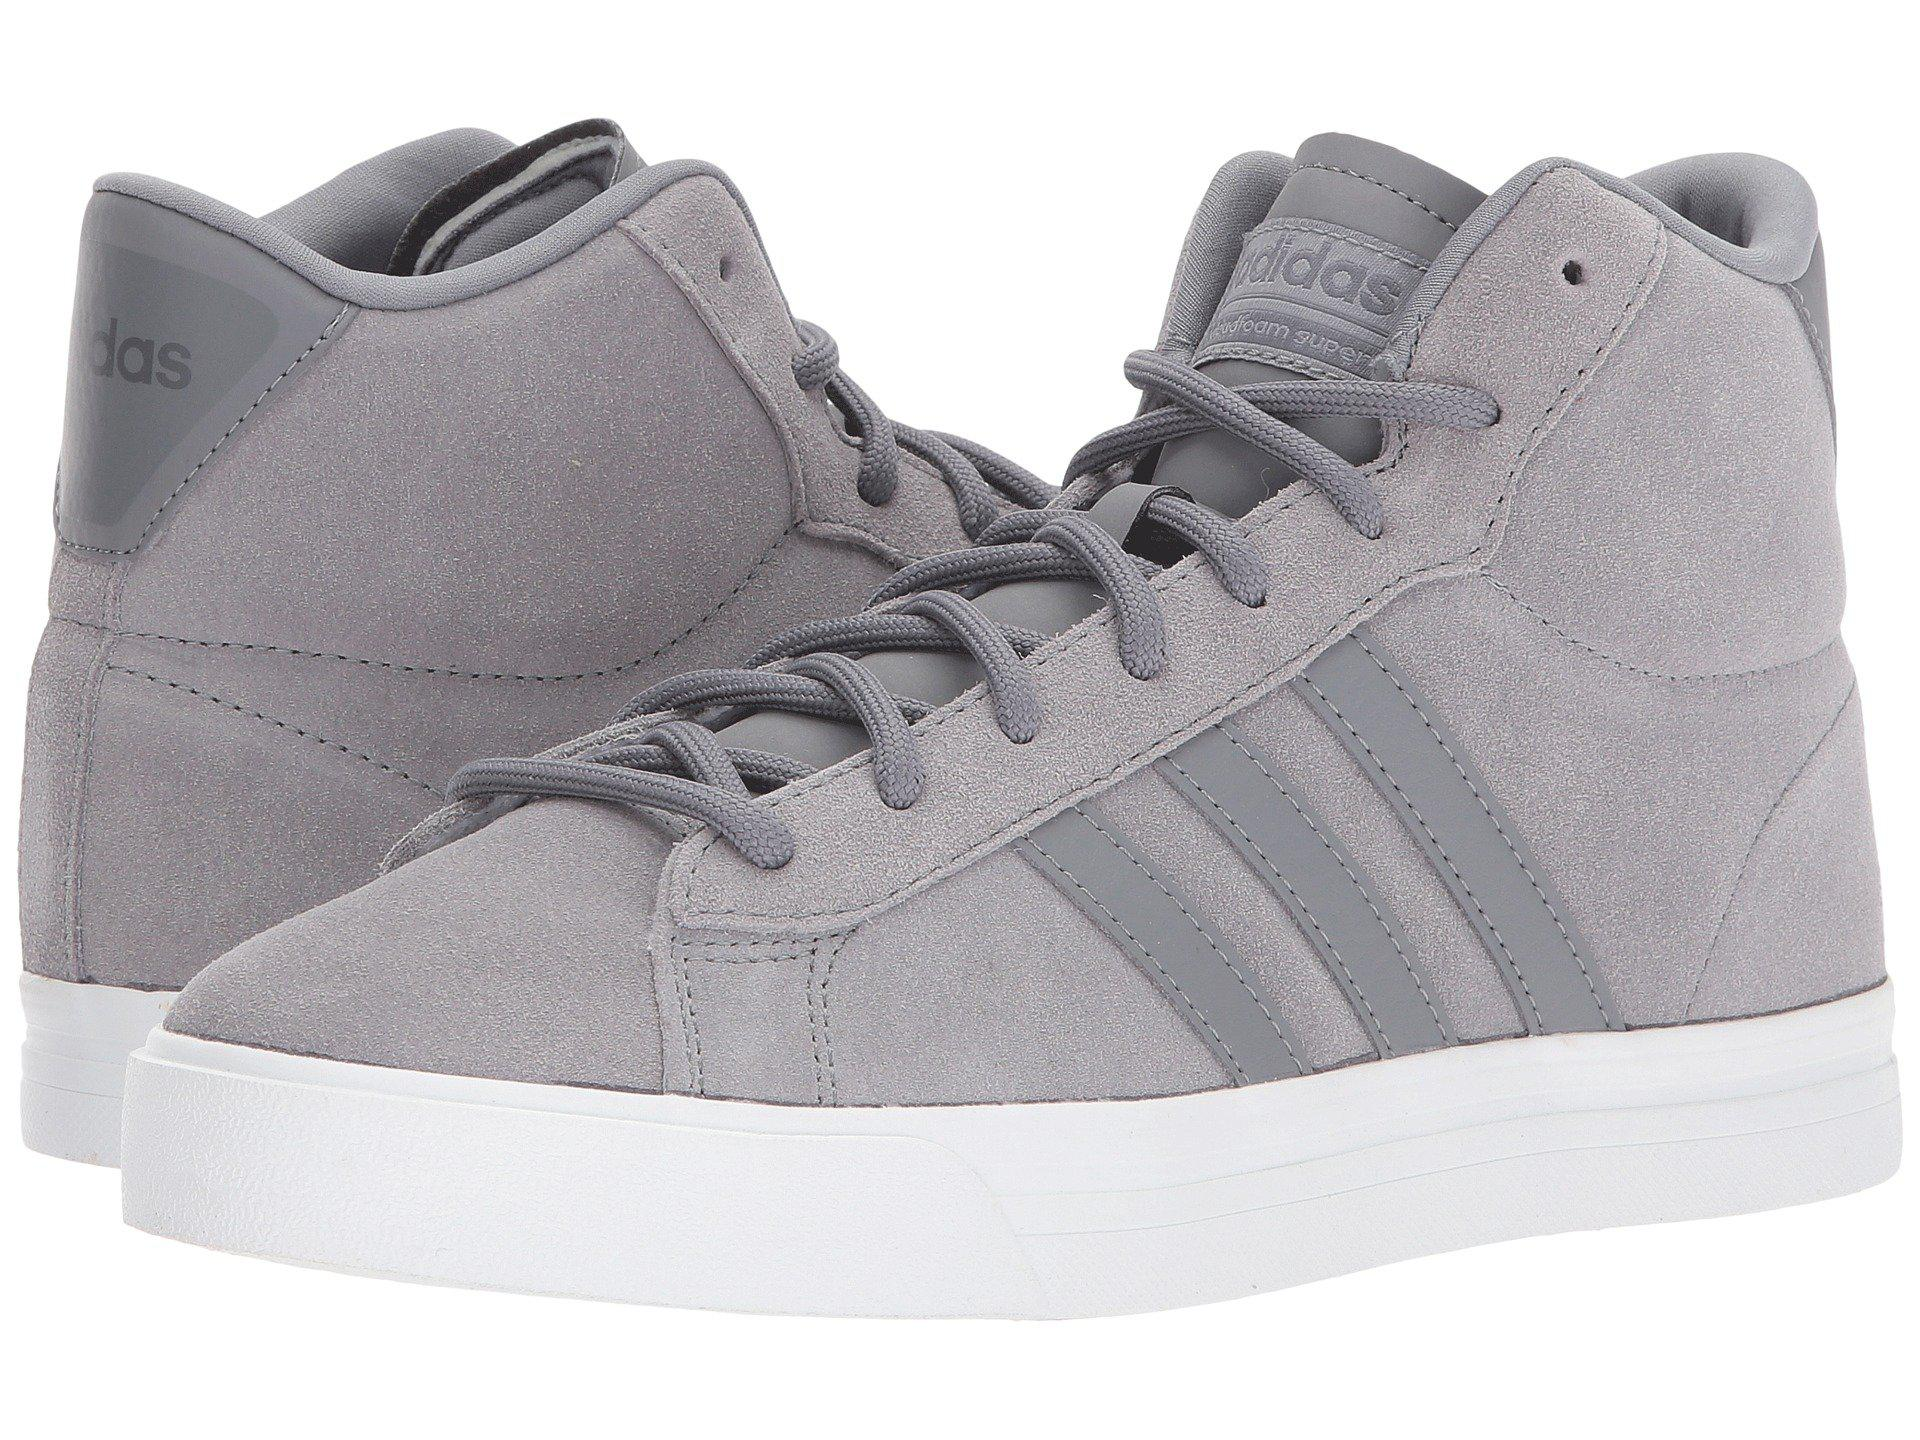 Lyst - adidas Cloudfoam Super Daily Mid in Gray for Men a5a7516c3